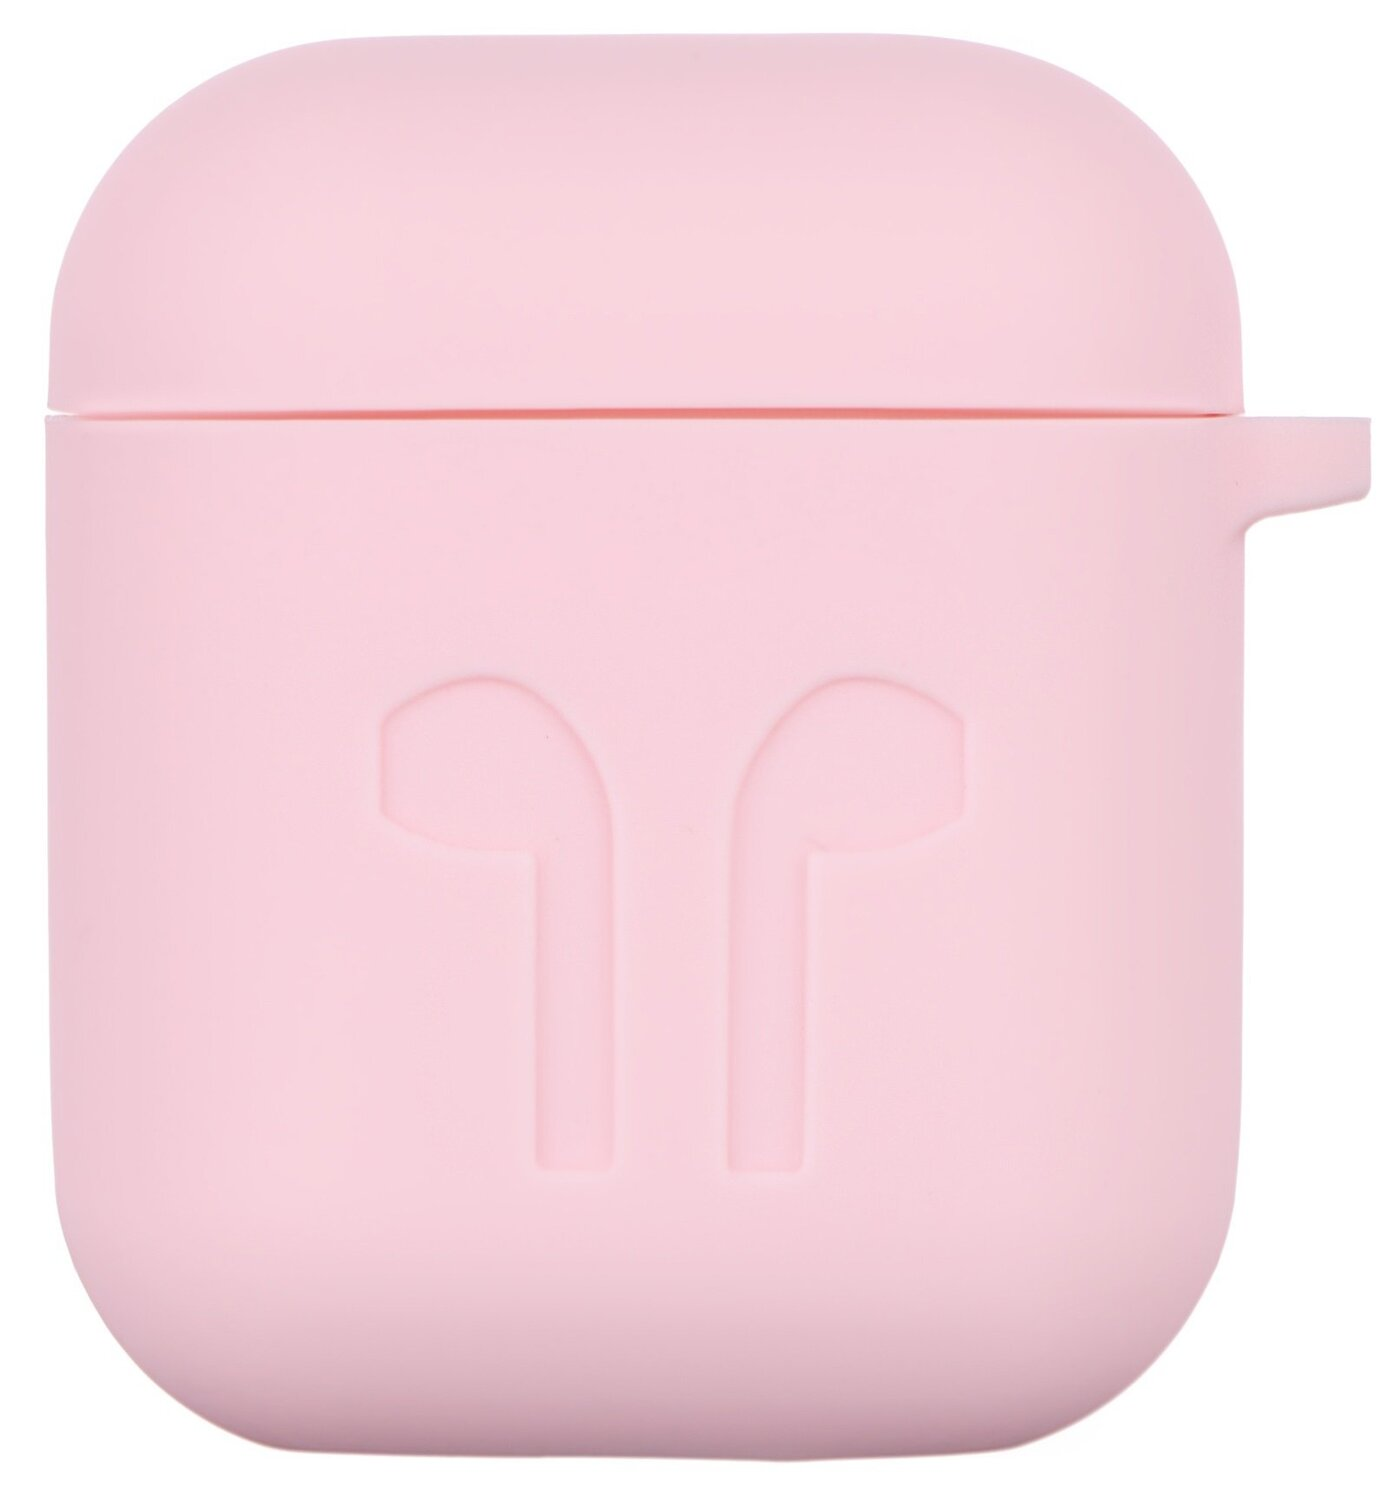 Чехол 2Е для Apple AirPods Pure Color Silicone (1.5mm) Imprint Light pink фото 2